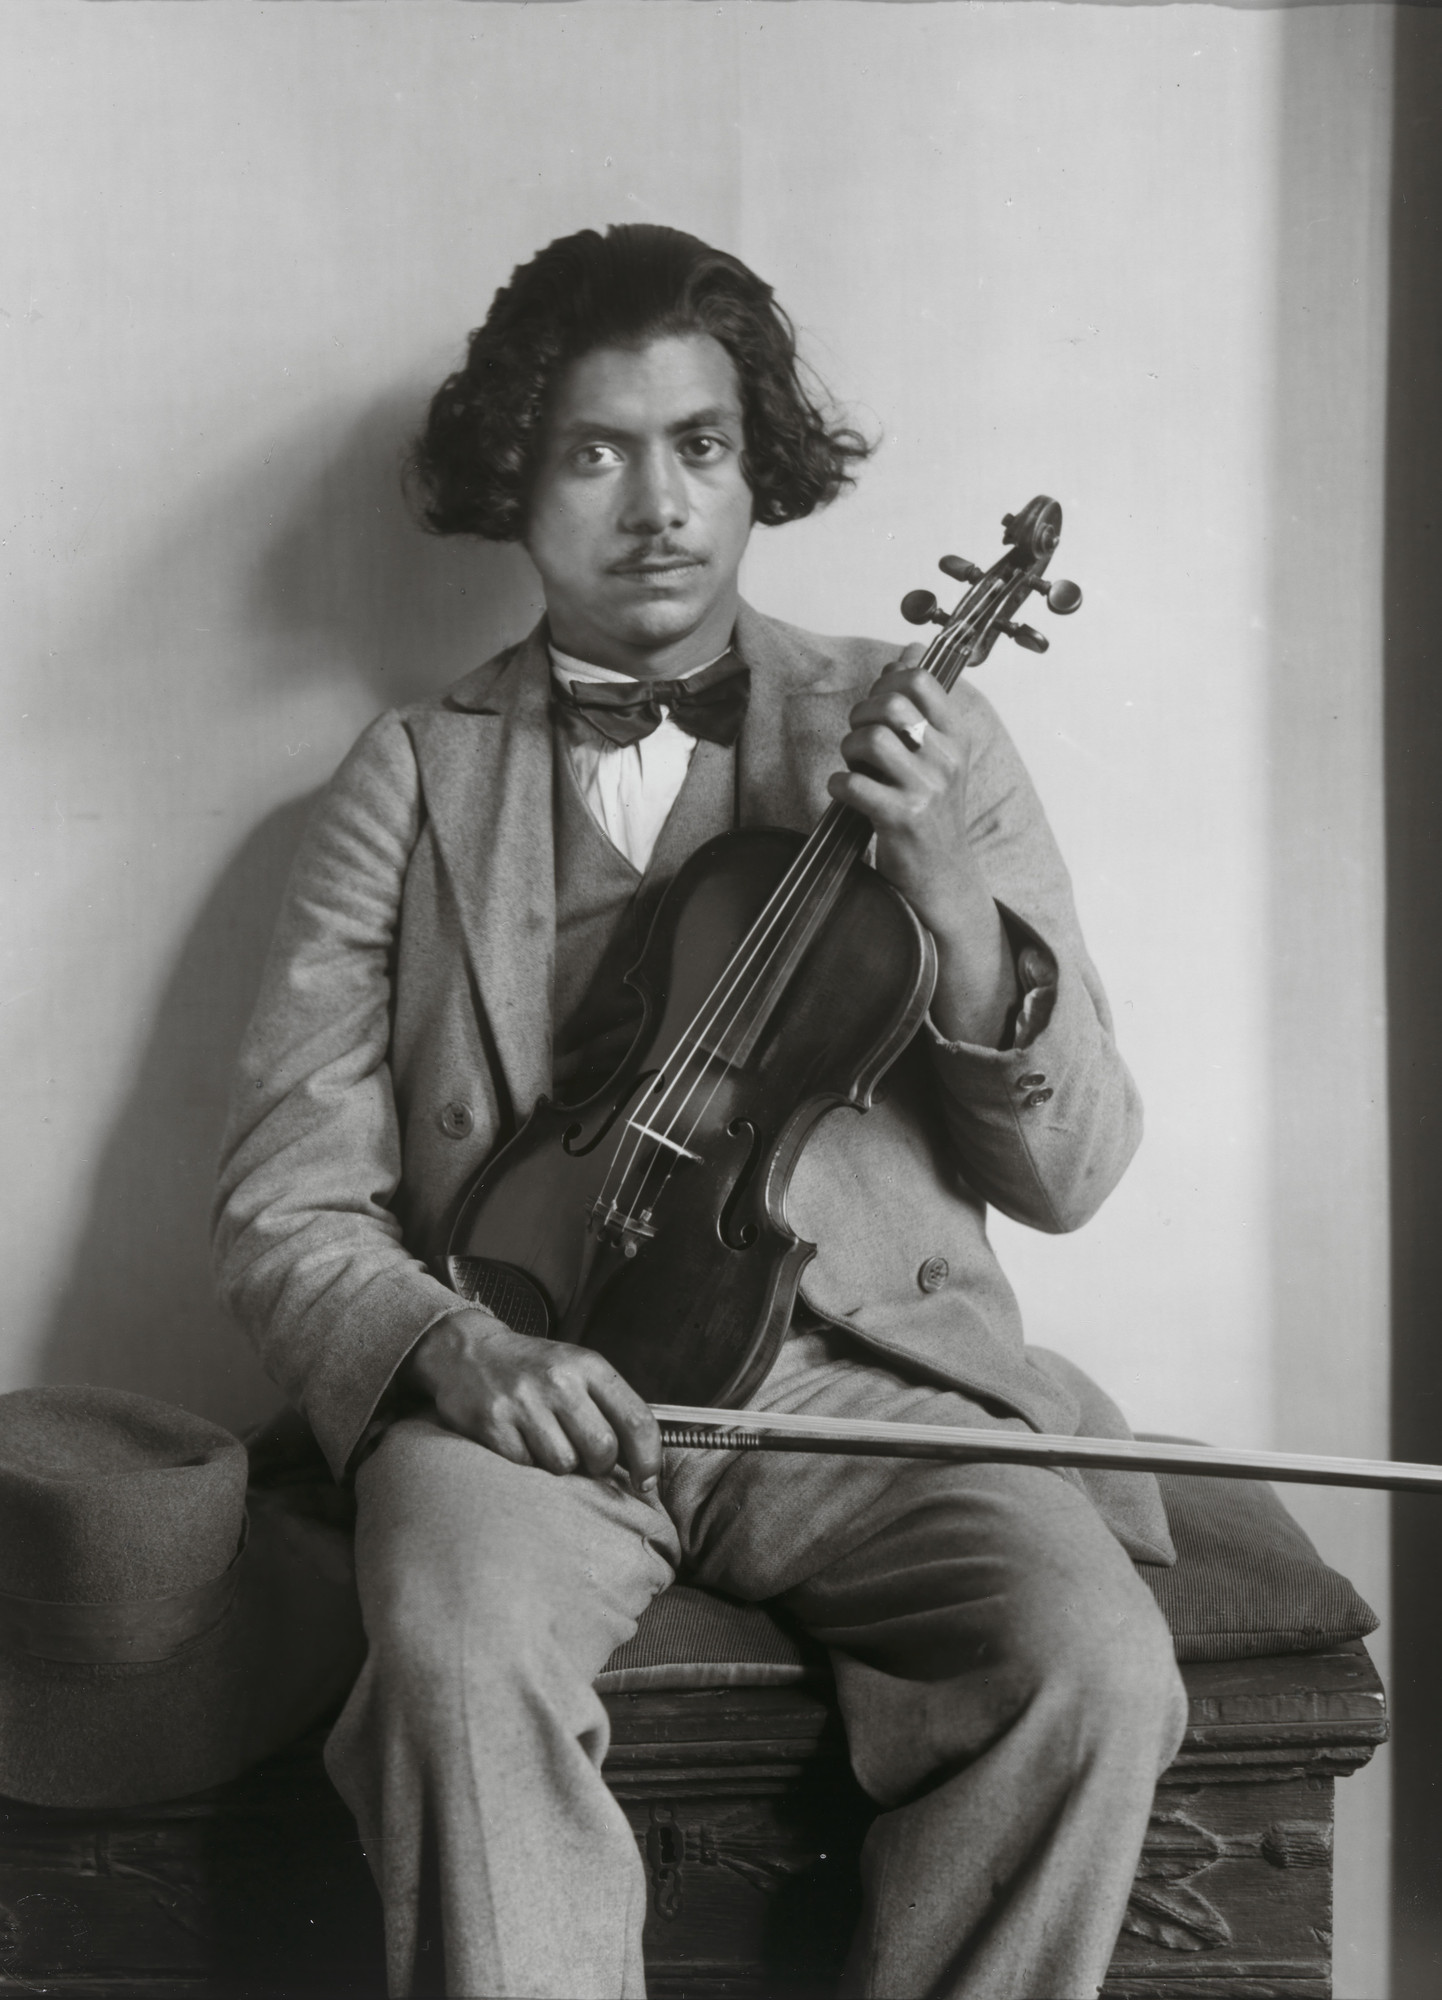 August Sander. First Violinist in Gypsy Band. c. 1930